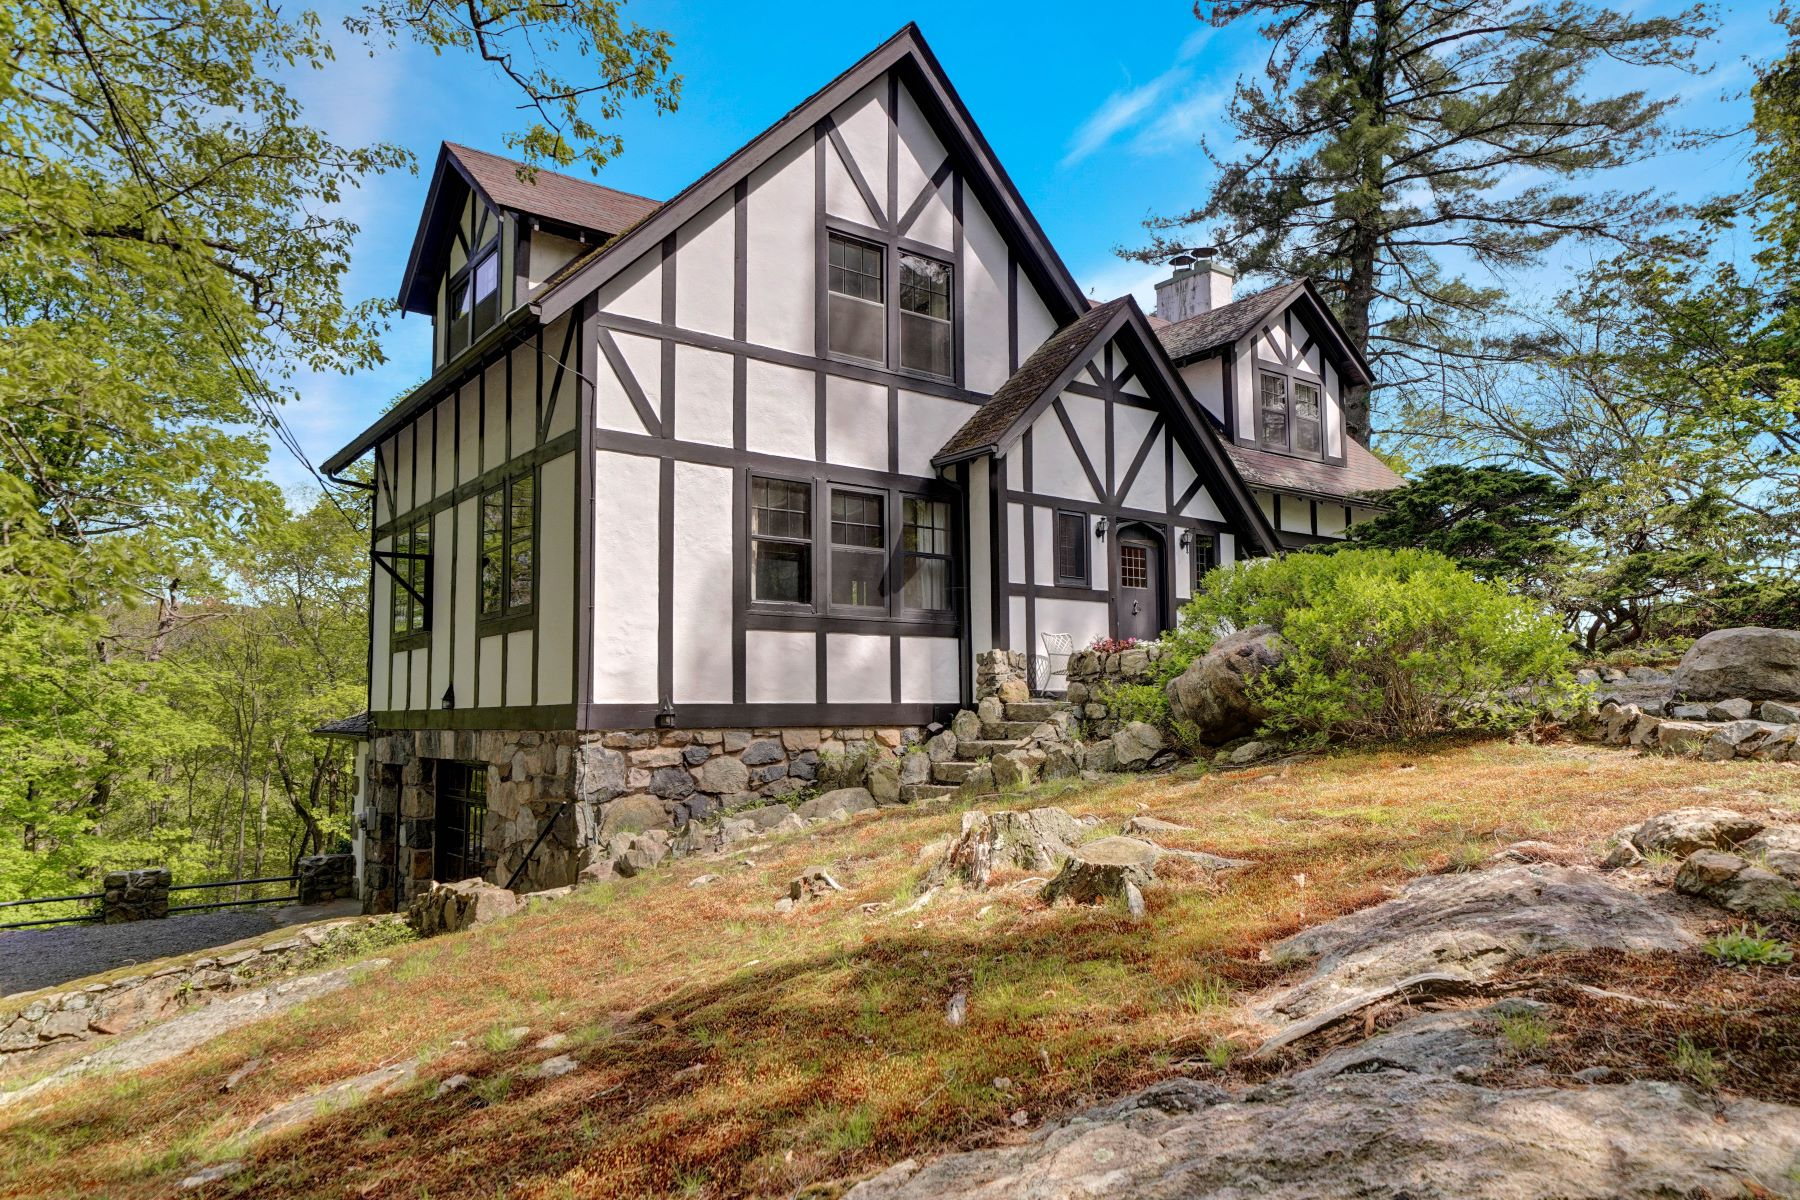 Single Family Homes for Active at Classic Half-Timbered and Stone Cottage 59 Crows Nest Road Tuxedo Park, New York 10987 United States